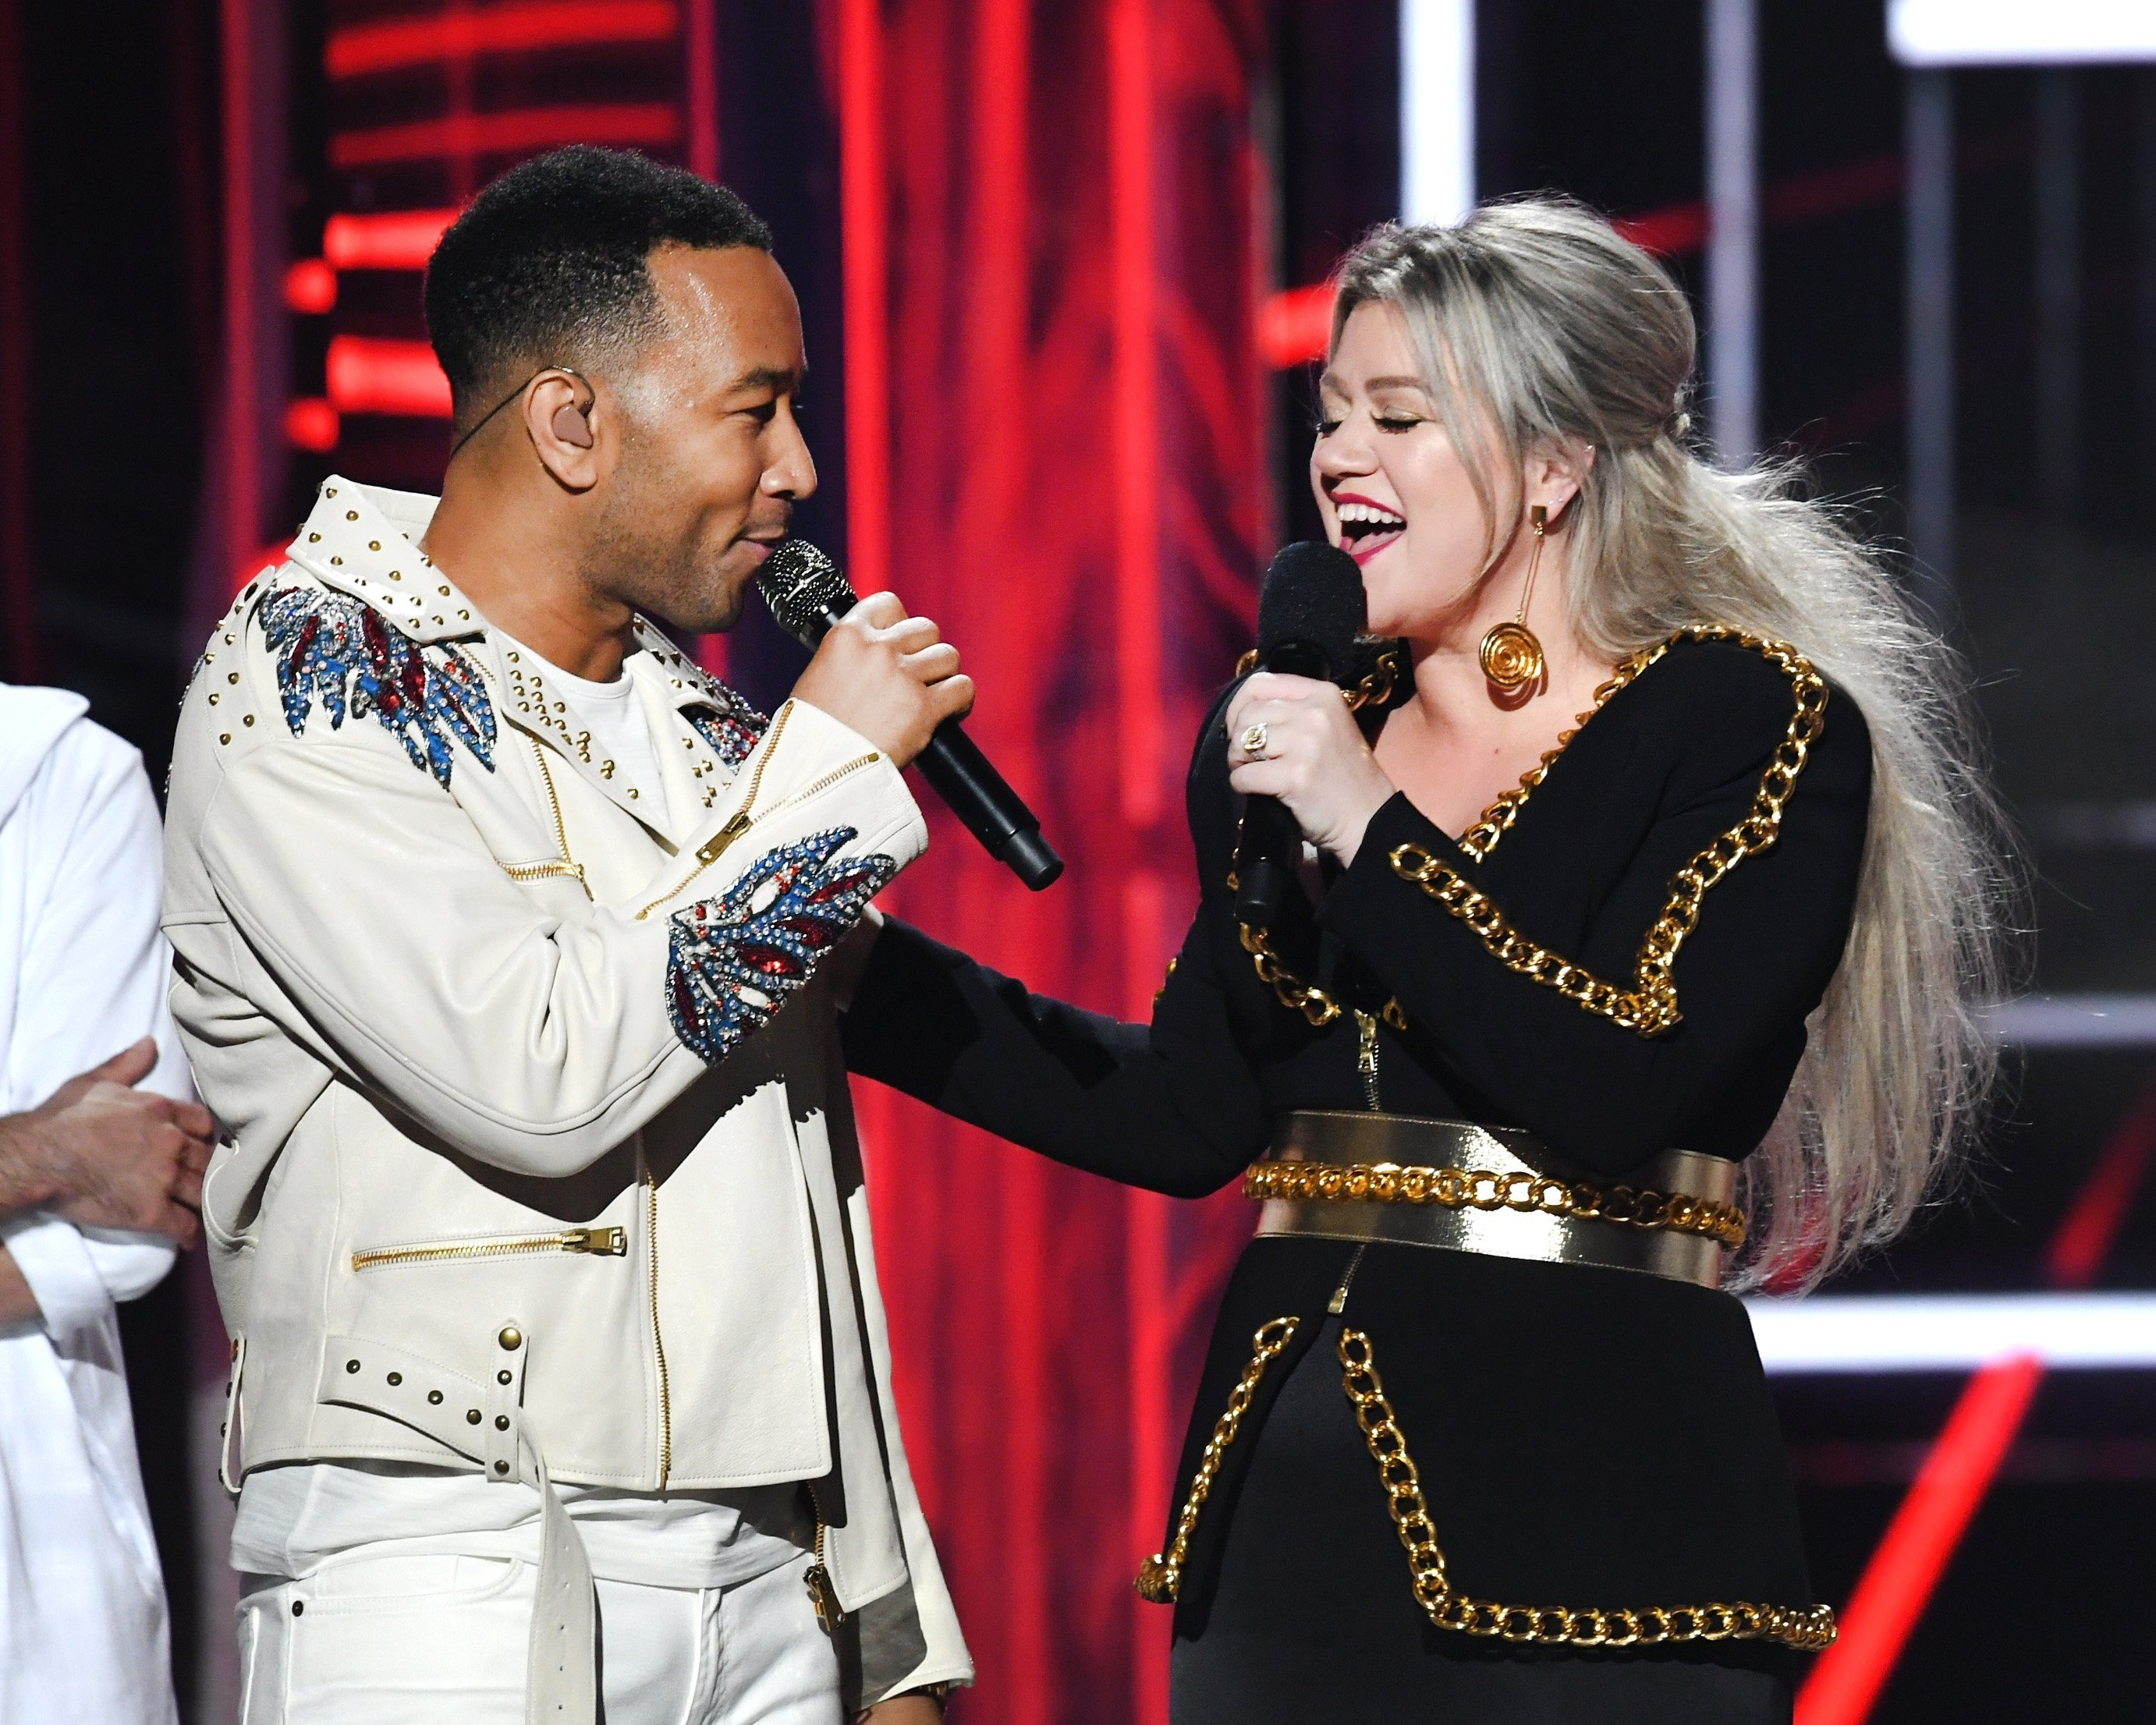 John Legend and Kelly Clarkson onstage at the 2018 Billboard Music Awards in Las Vegas, Nevada on May 20, 2018 | Photo: Getty Images